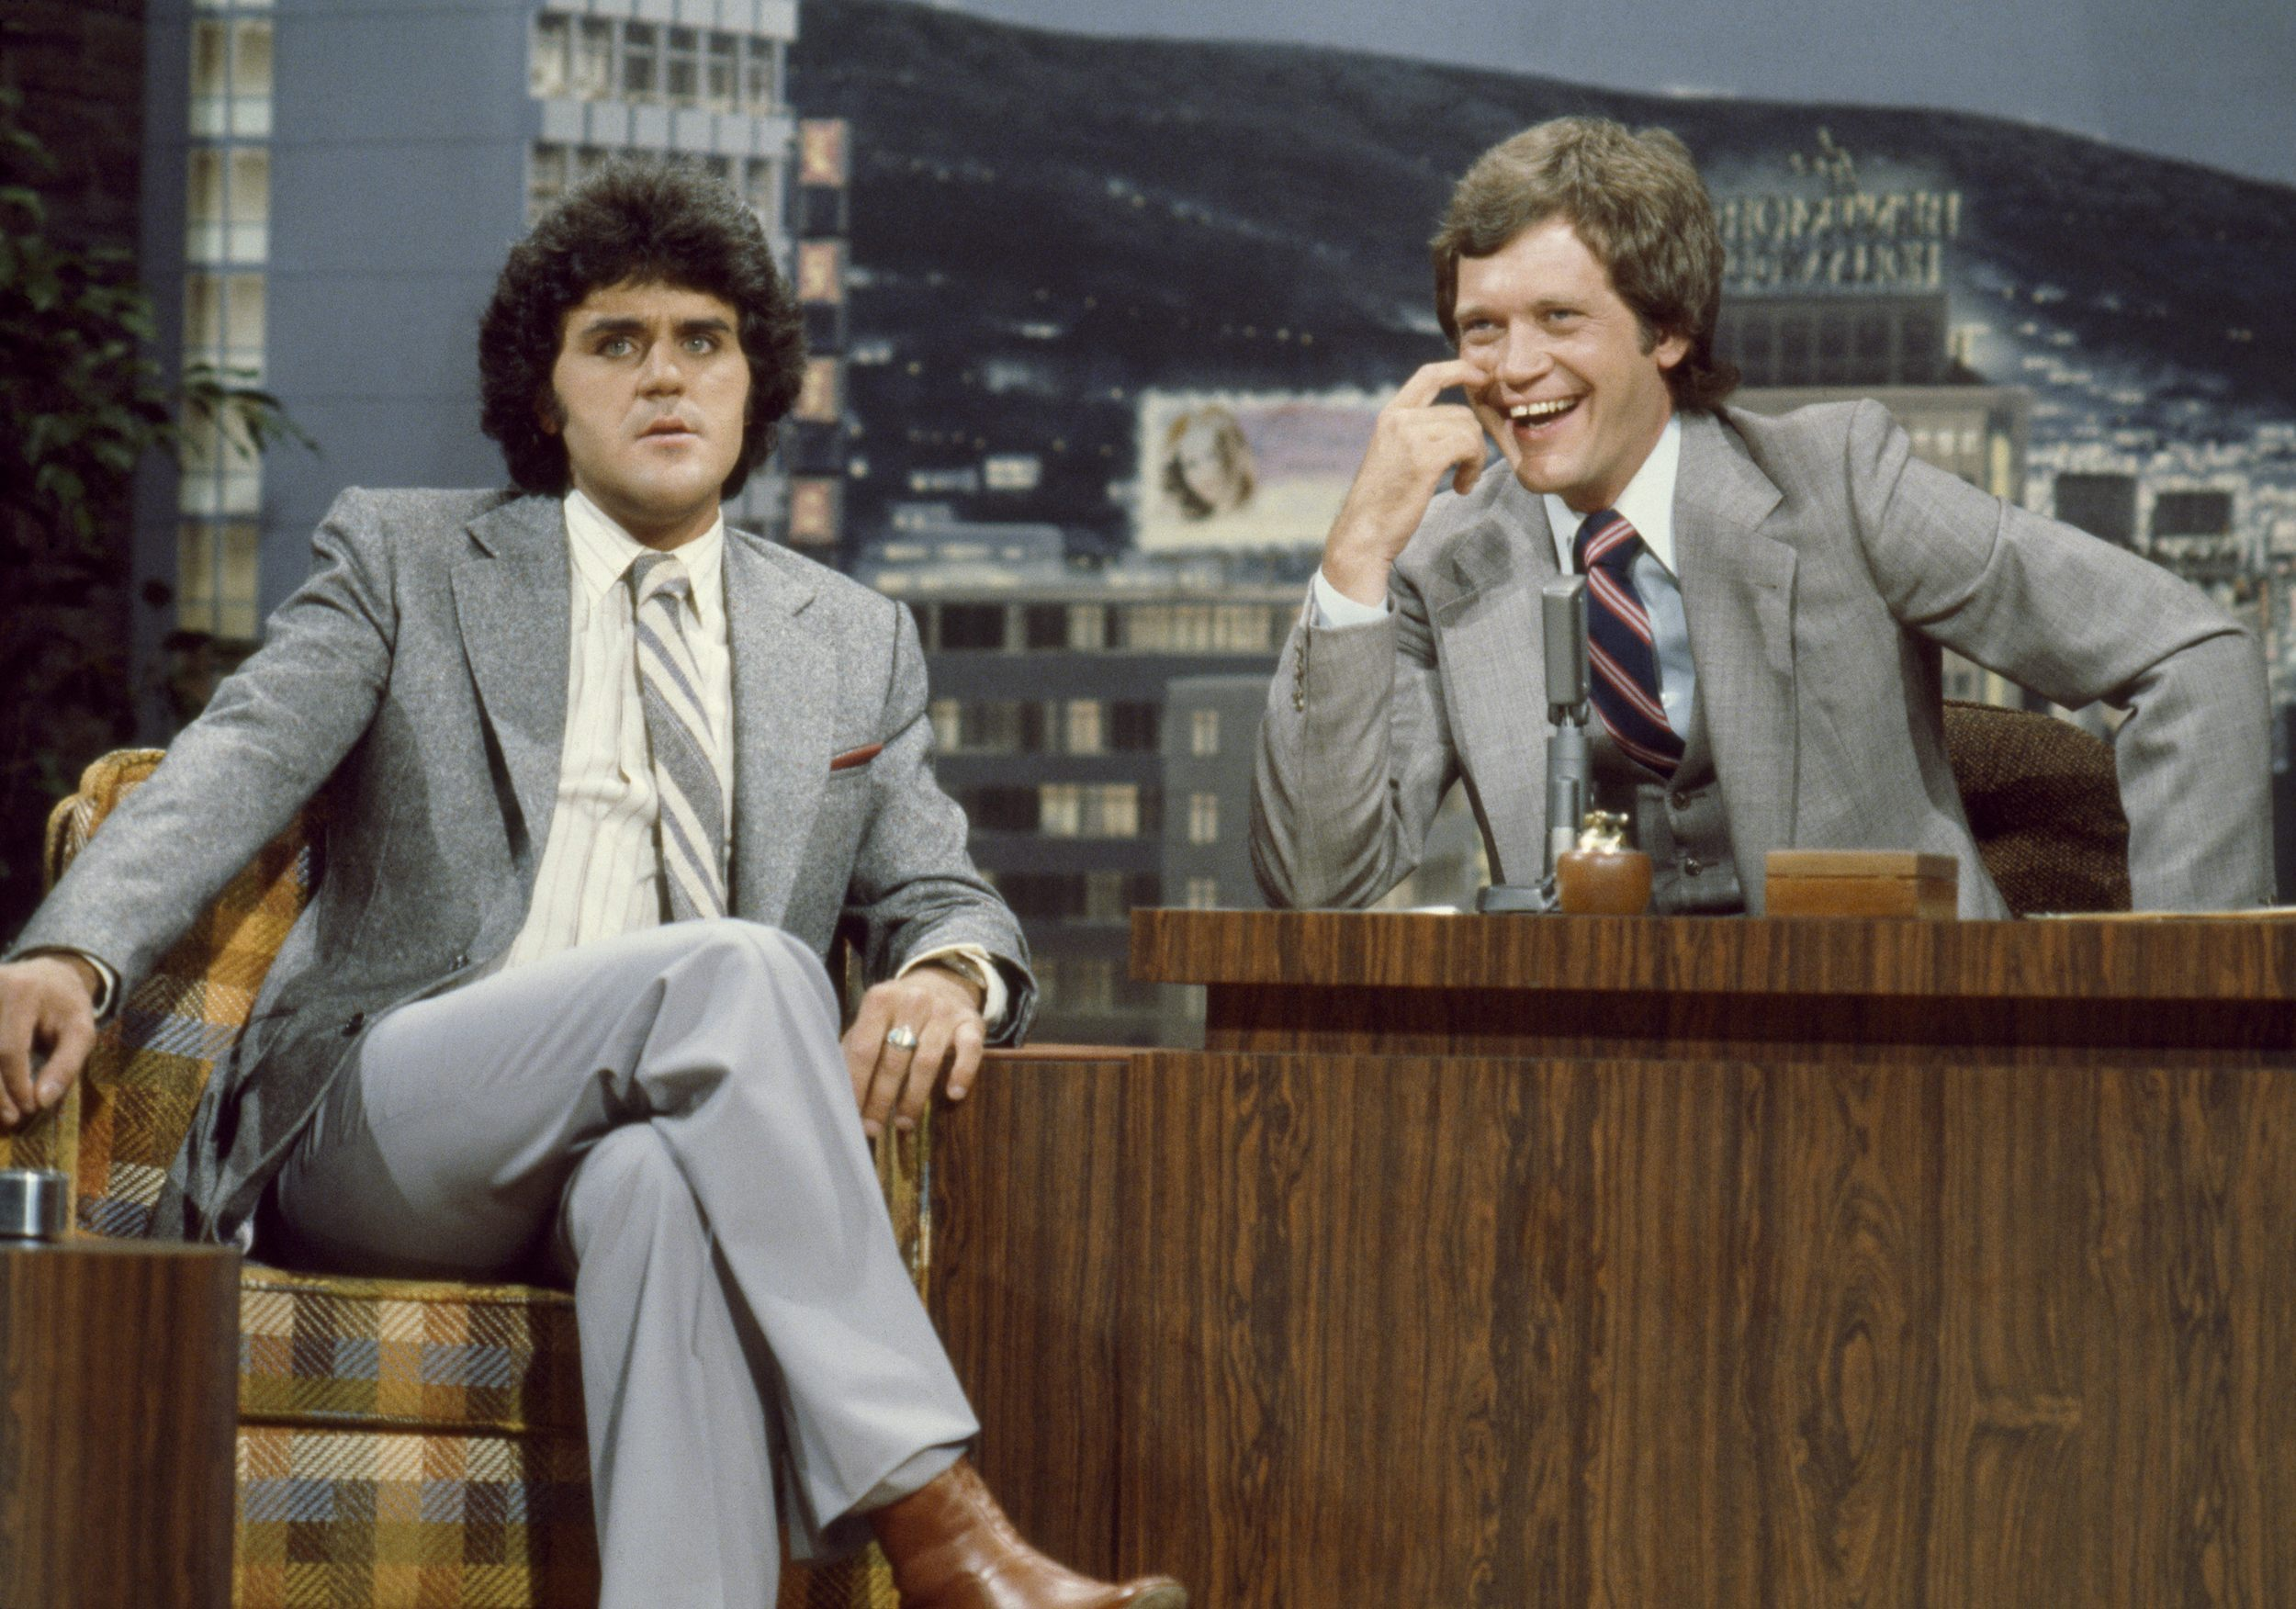 Jay Leno sits to the left of David Letterman. Jay Leno has his legs crossed while David Letterman has his hand on the table.